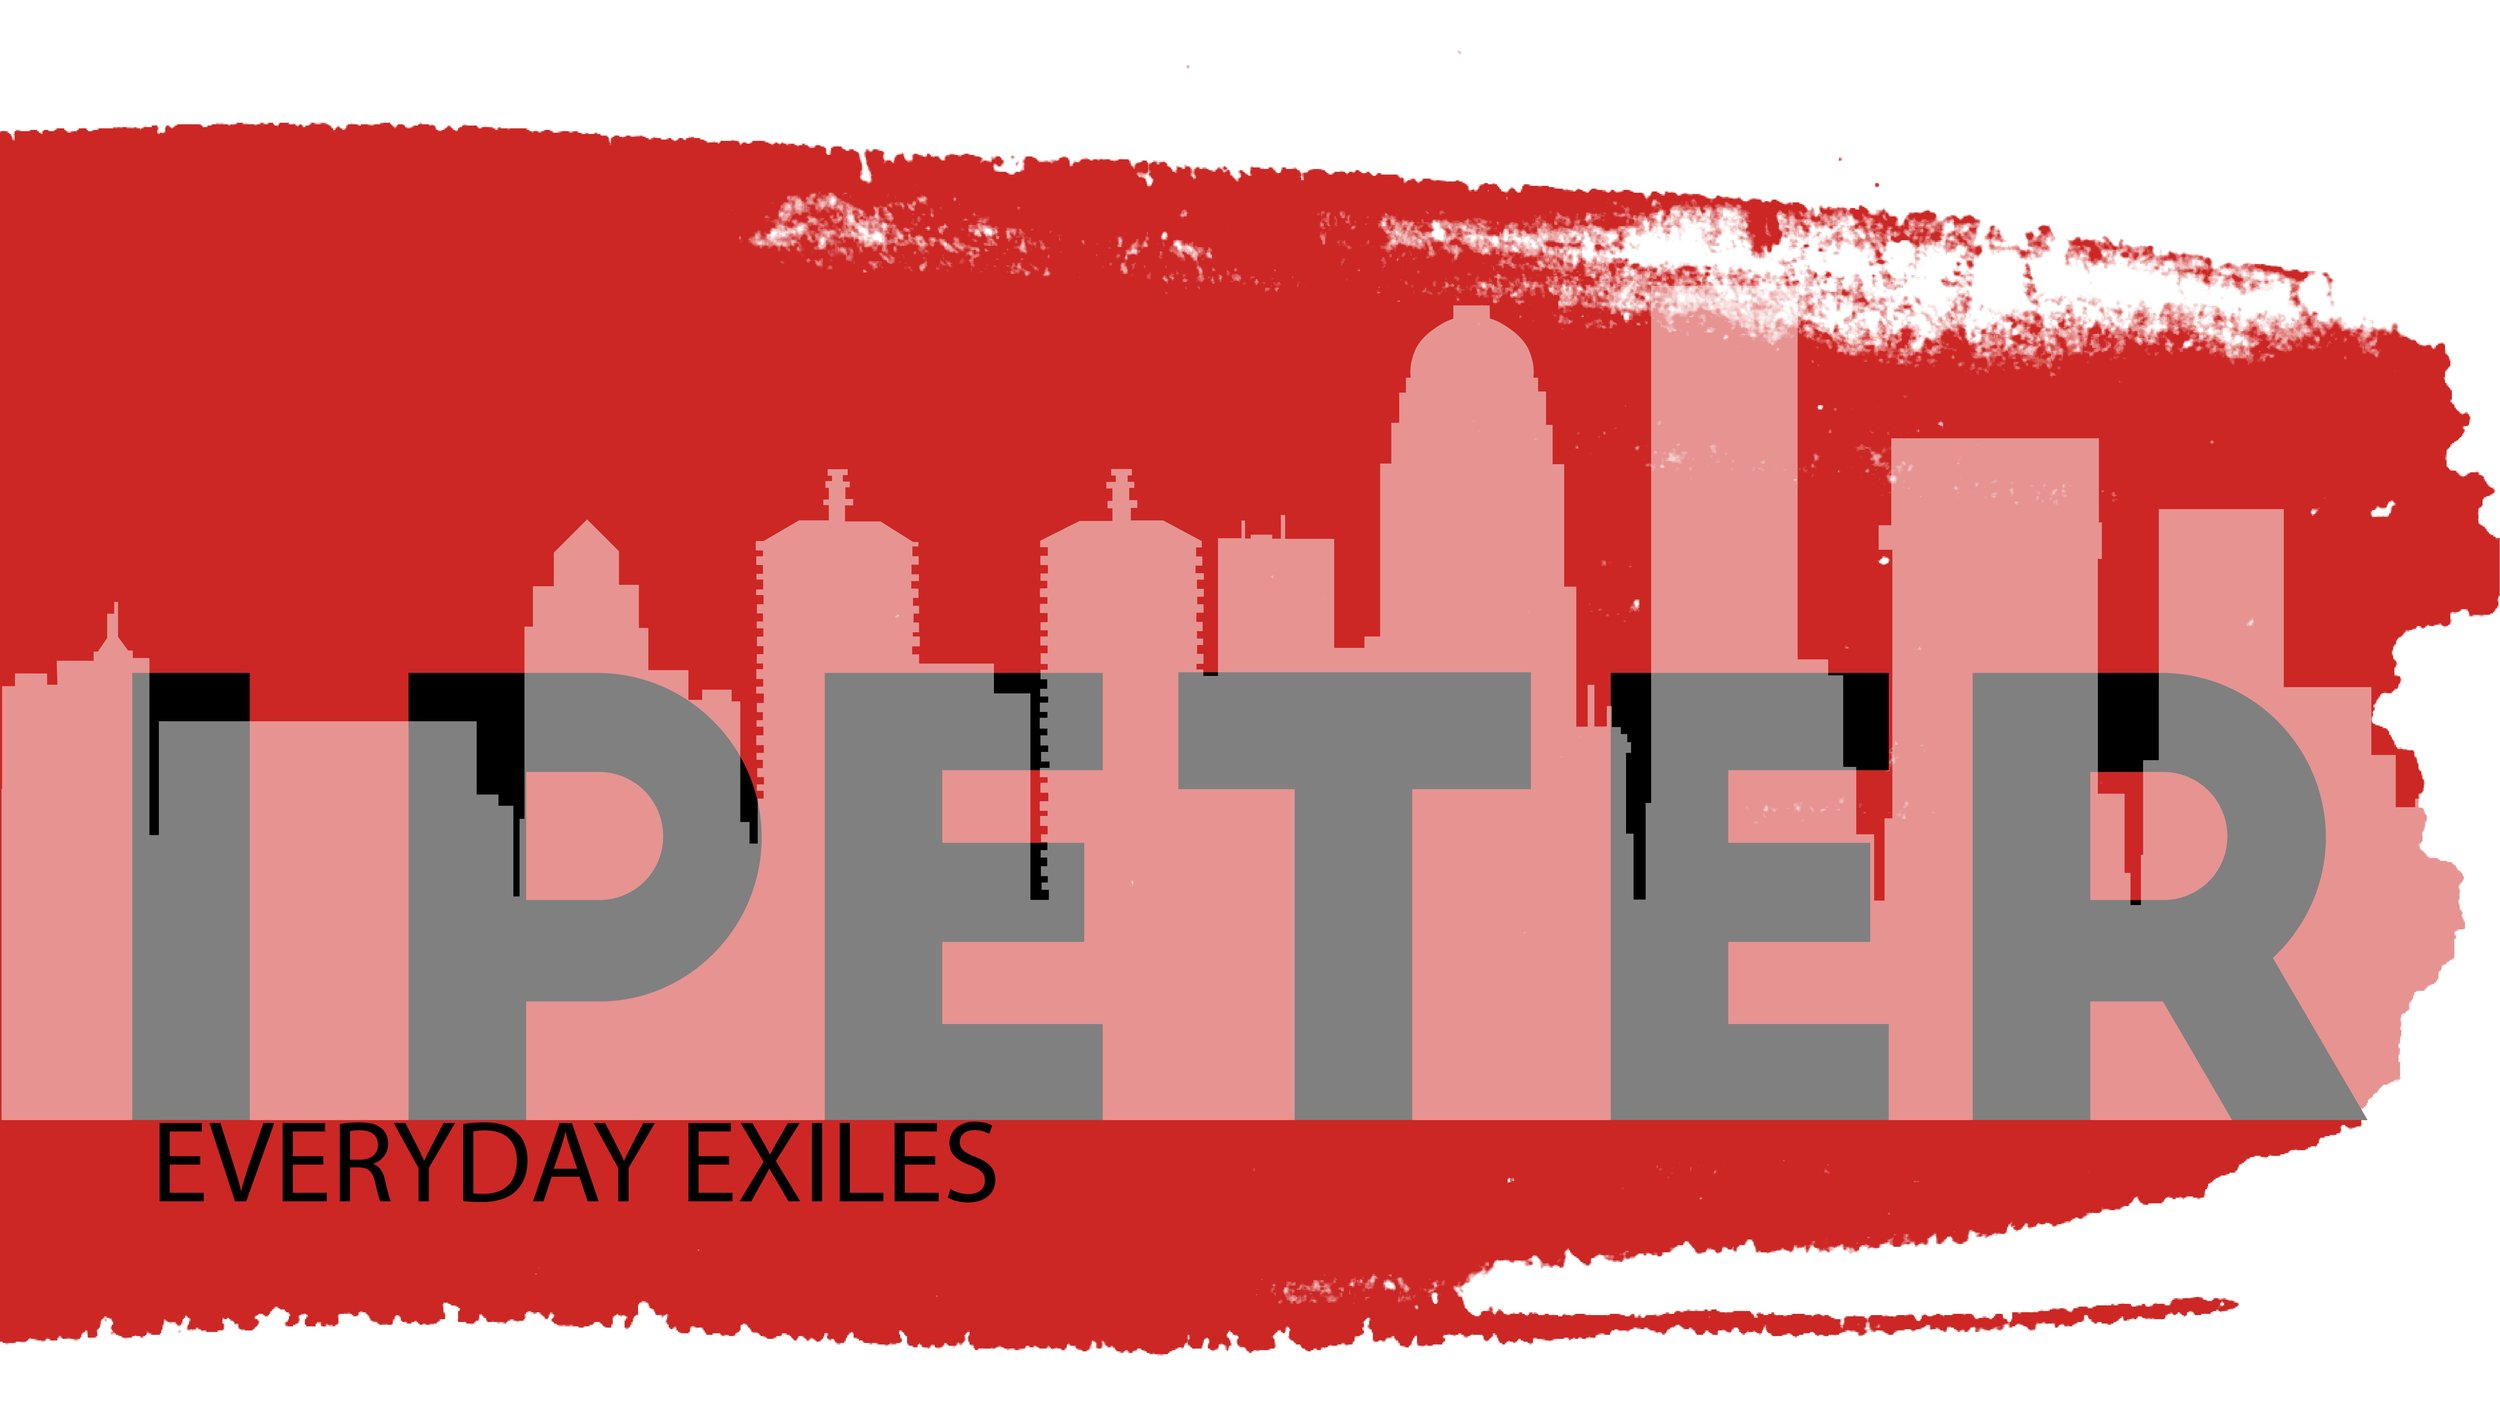 EverydayExile_I_Peter.jpg